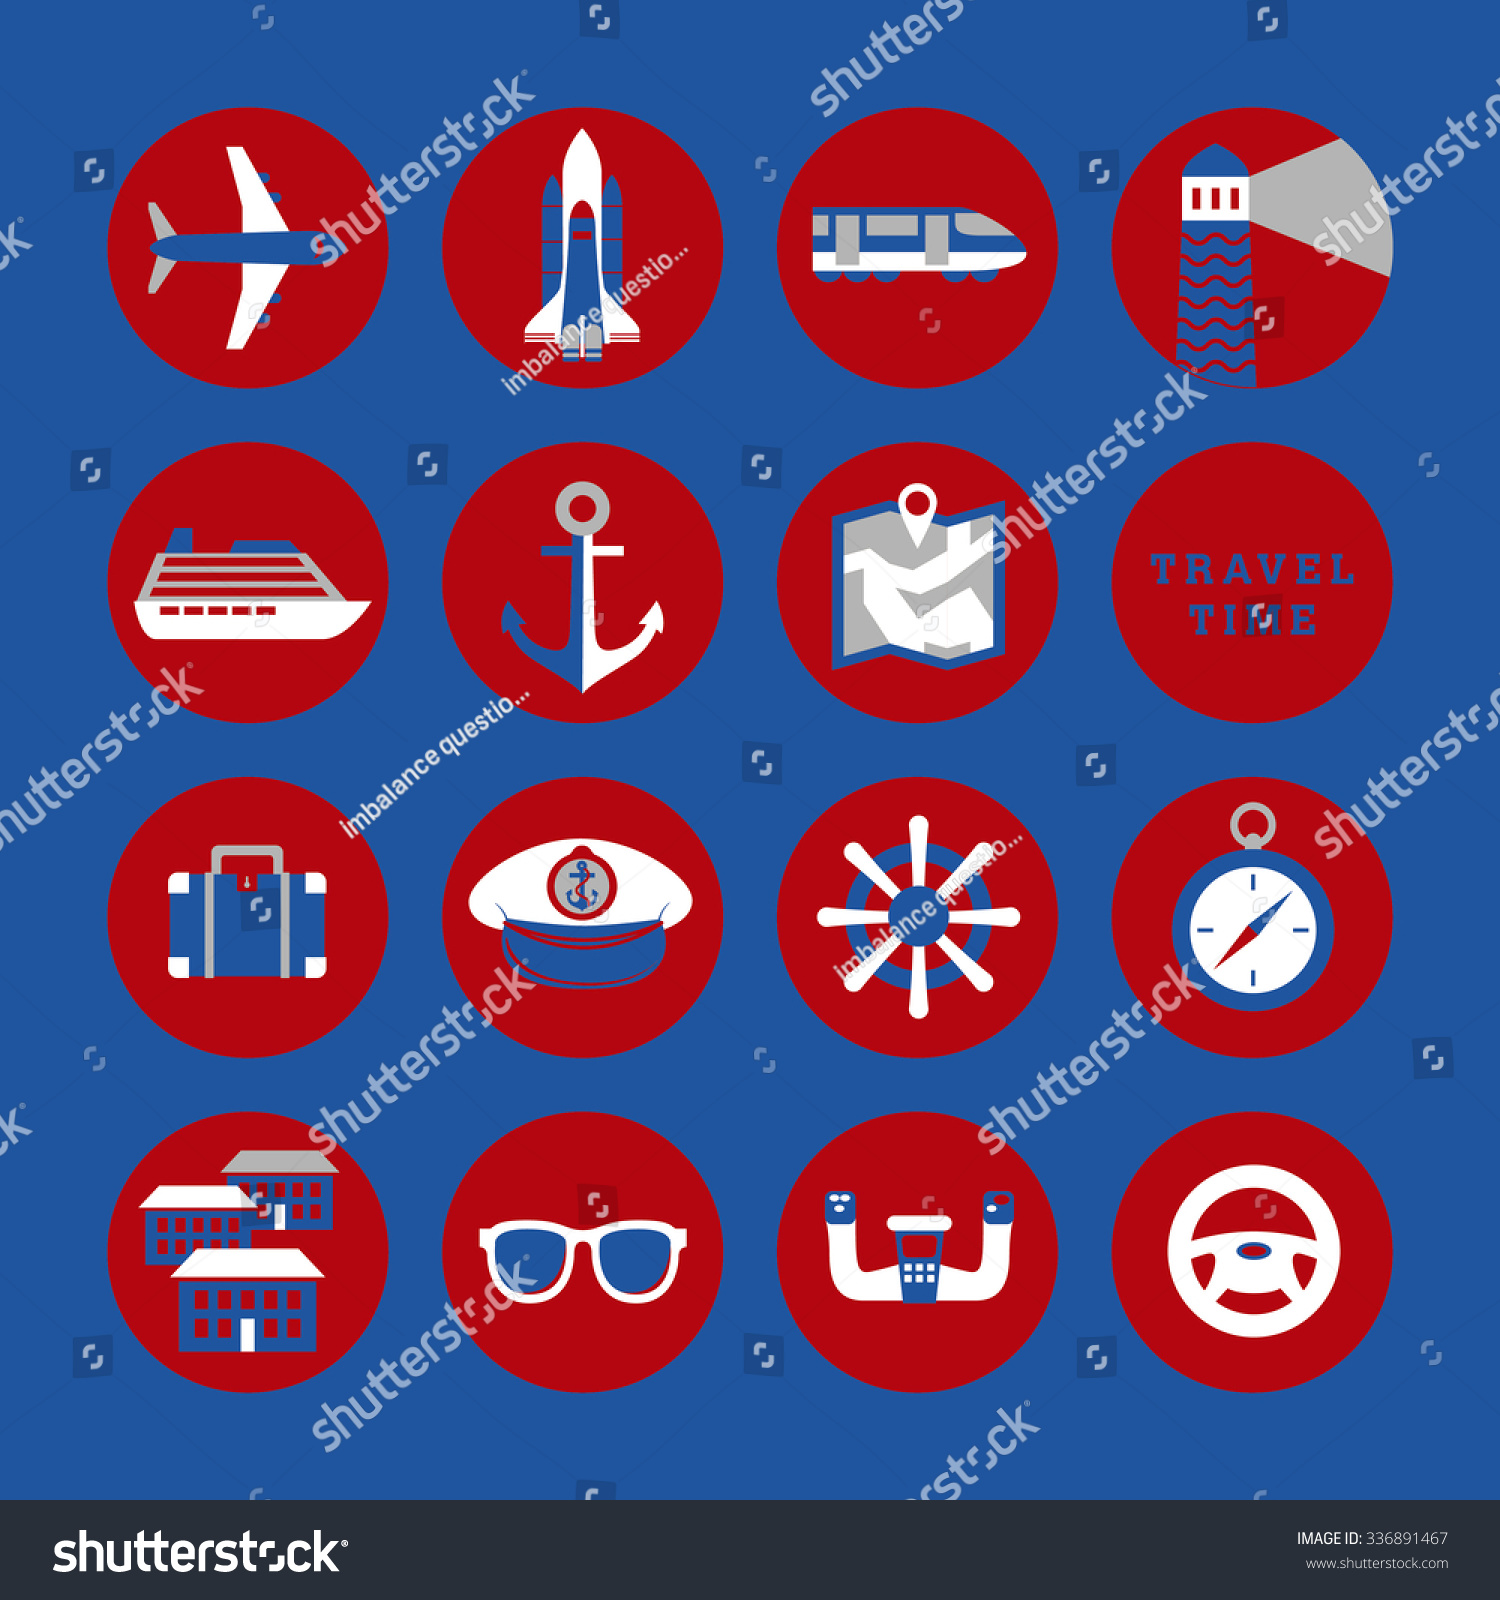 Travel signs symbols icons stock vector 336891467 shutterstock travel signs symbols icons buycottarizona Choice Image